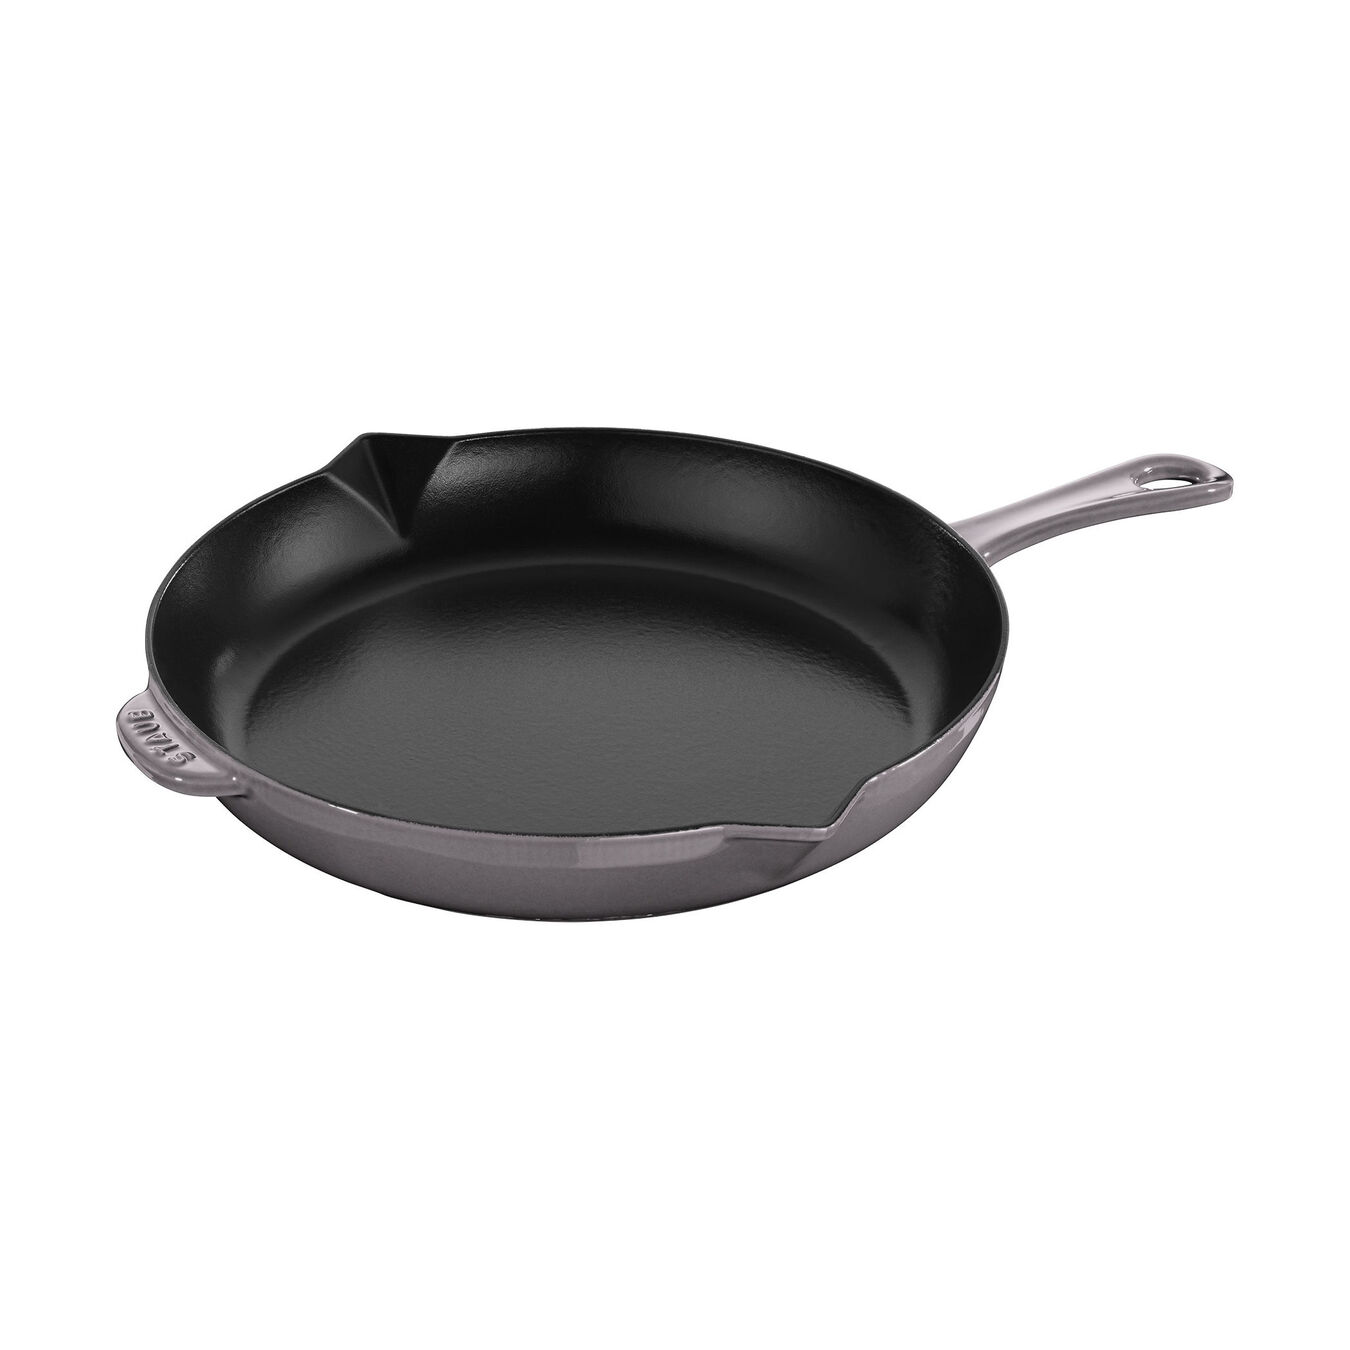 12-inch Fry Pan - Graphite Grey,,large 1